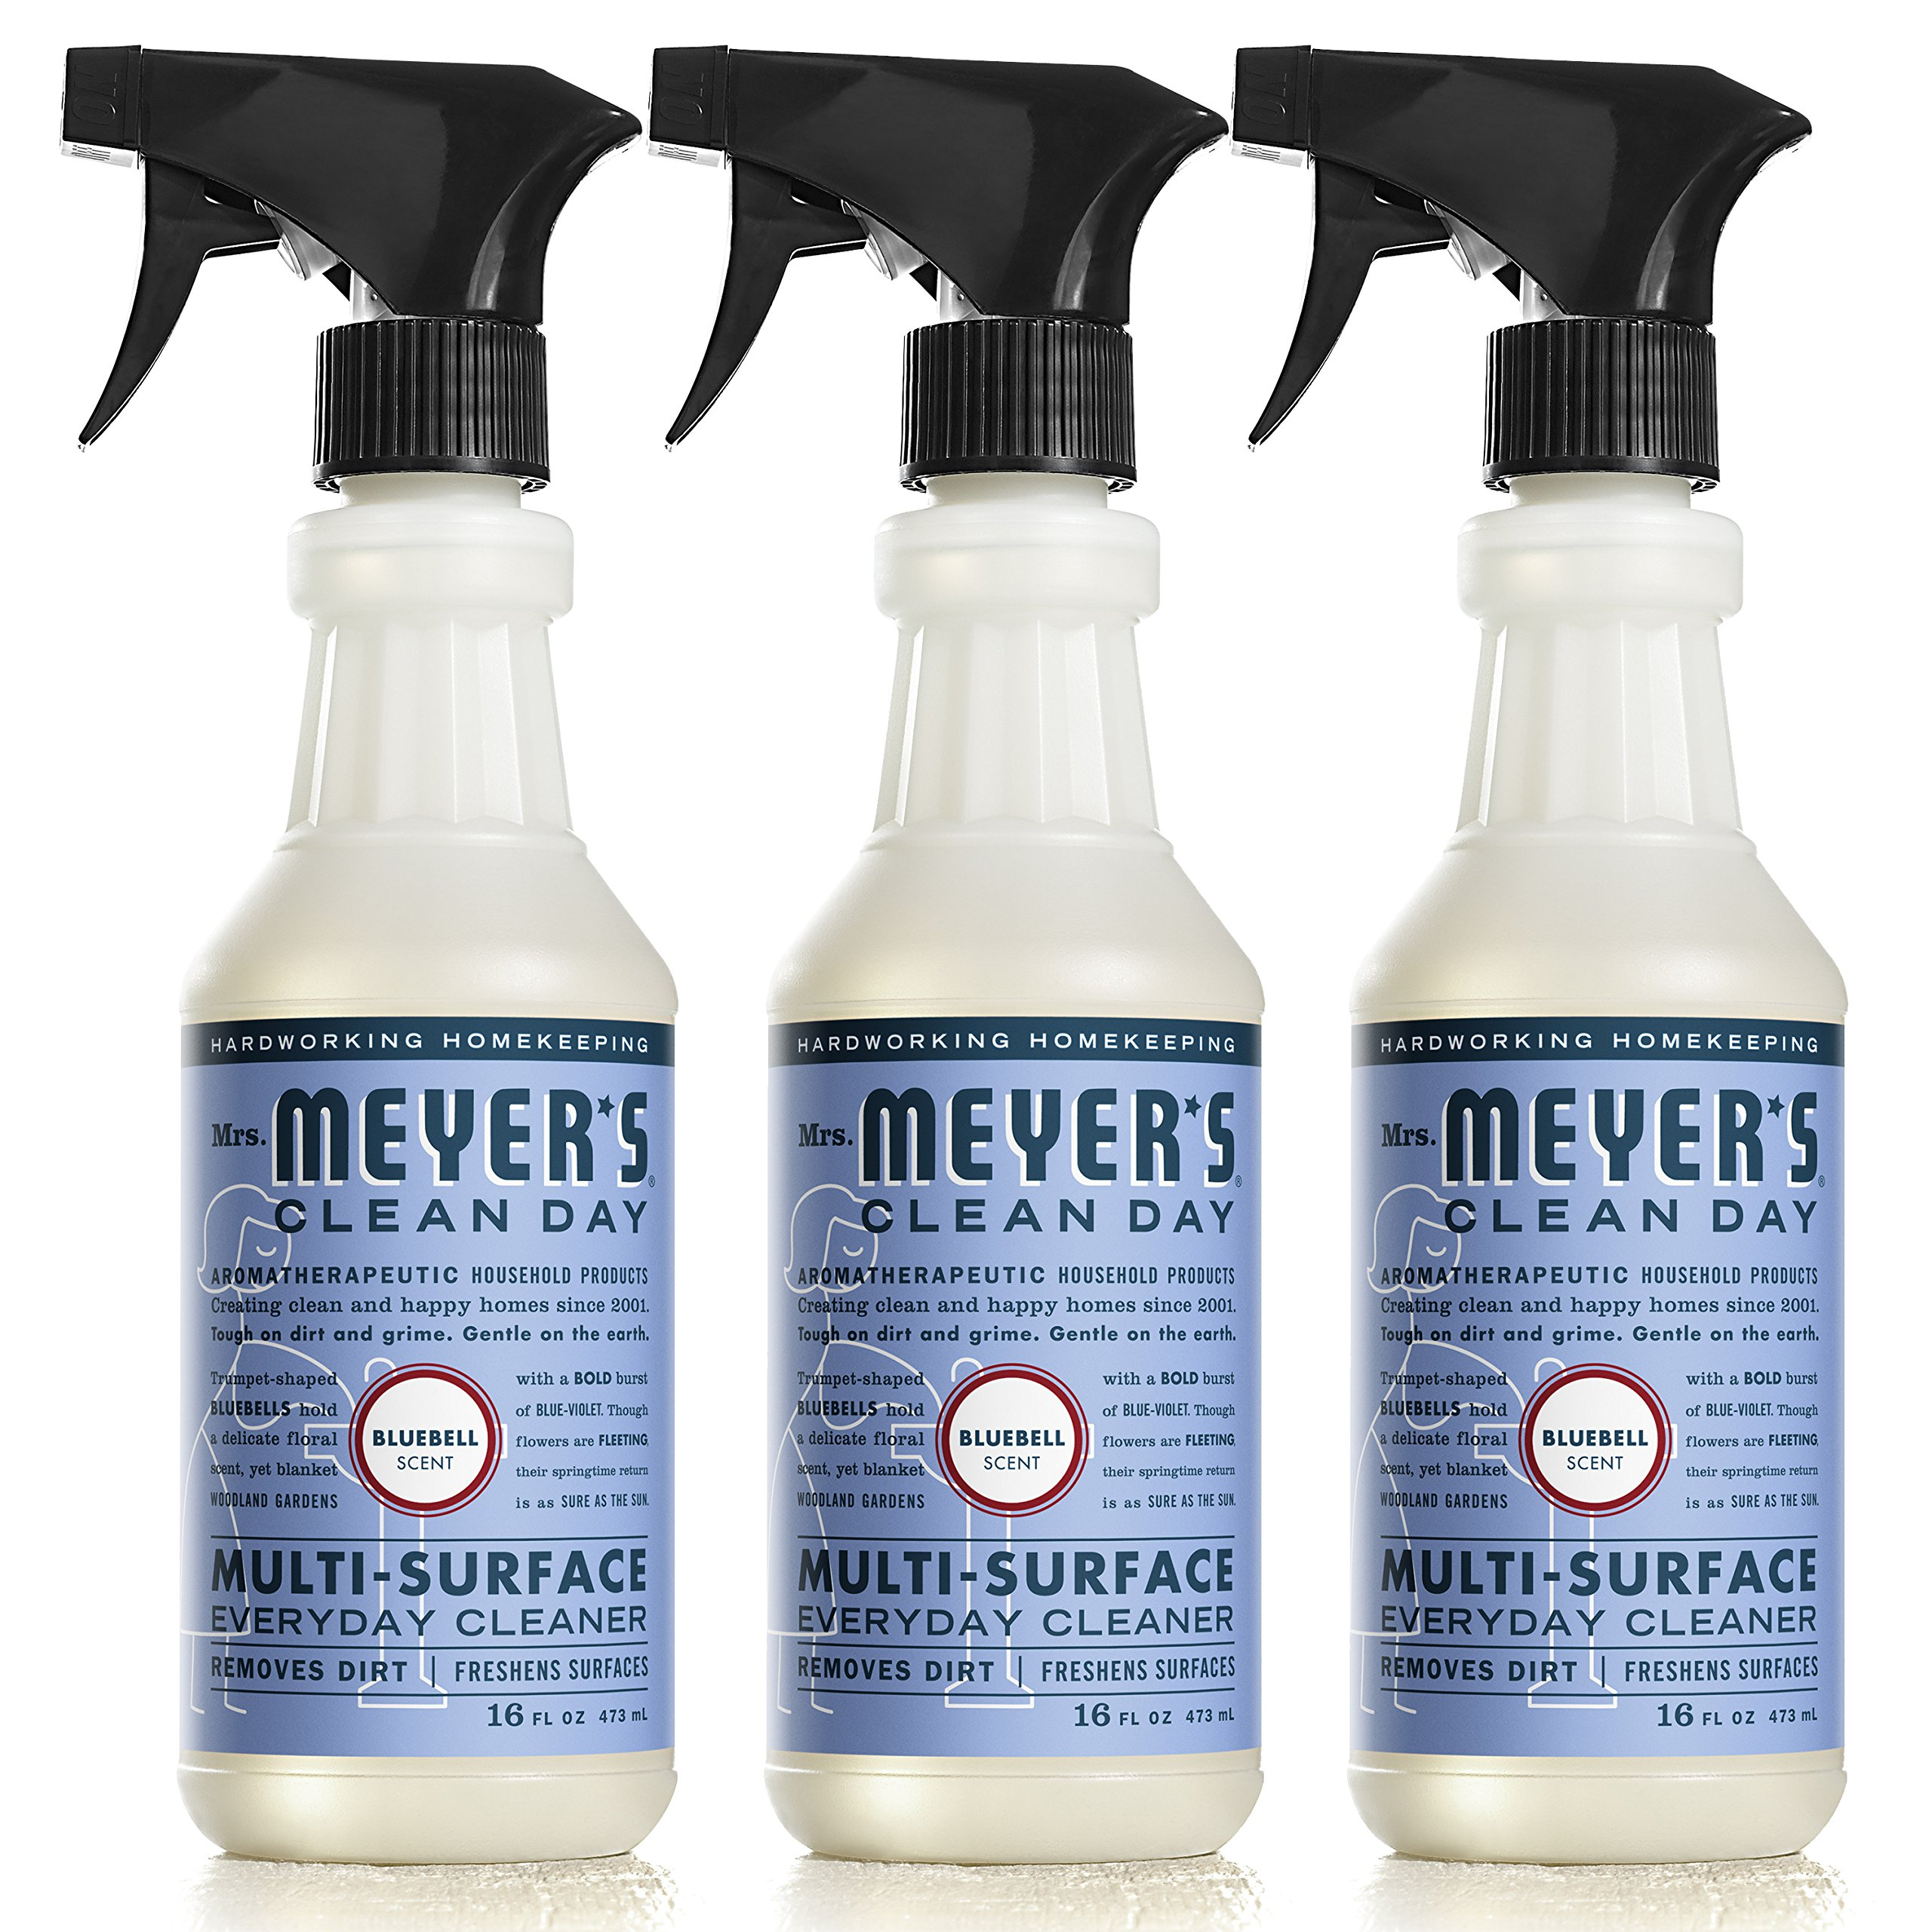 Mrs. Meyer's Clean Day Multi-Surface Everyday Cleaner, Bluebell, 16 fl oz, 3 ct